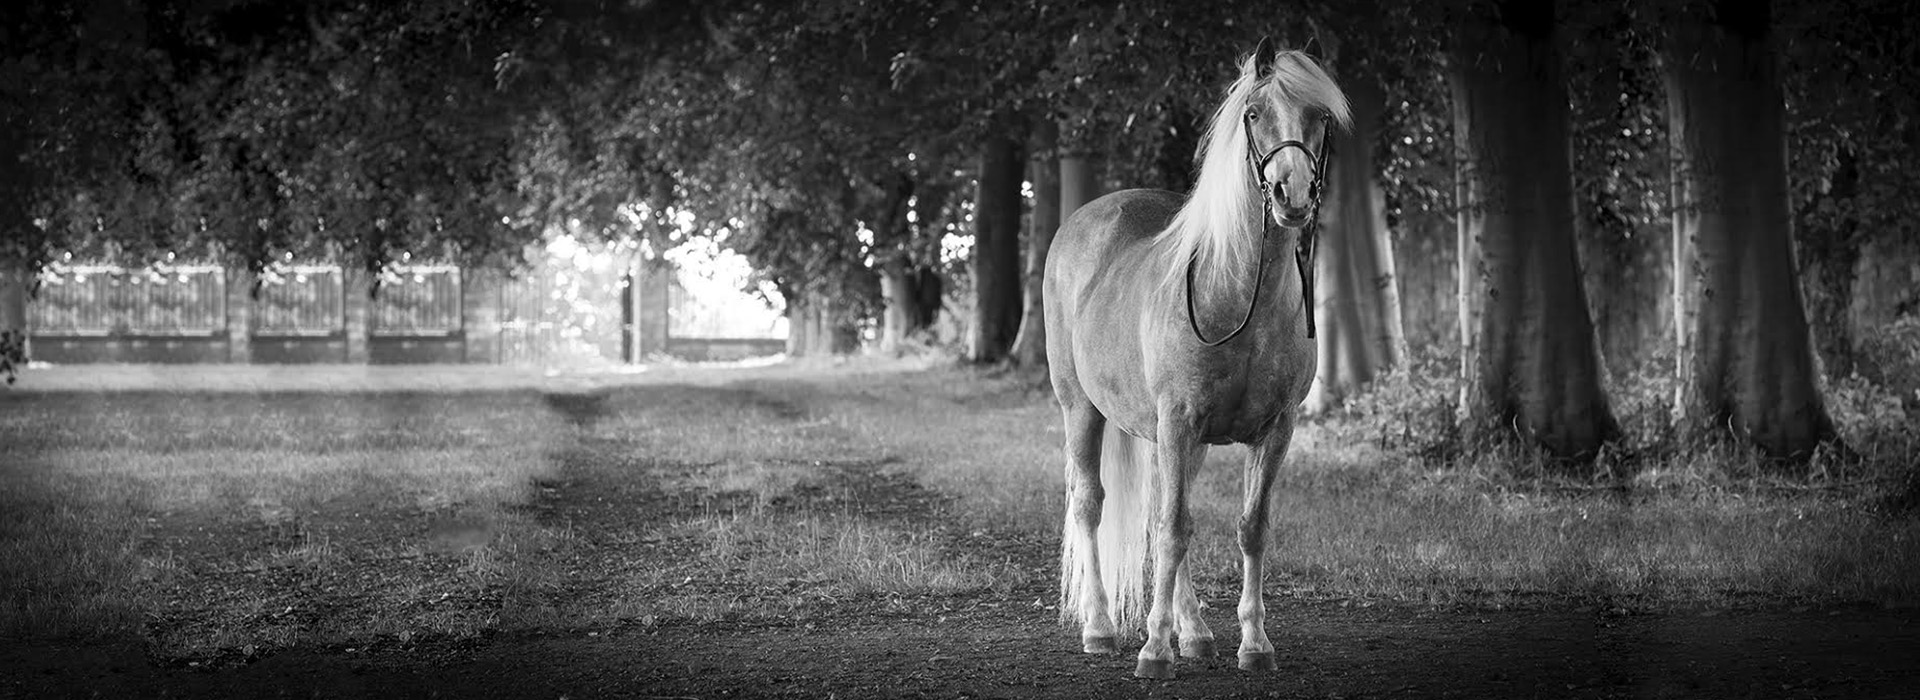 Striking equine photography